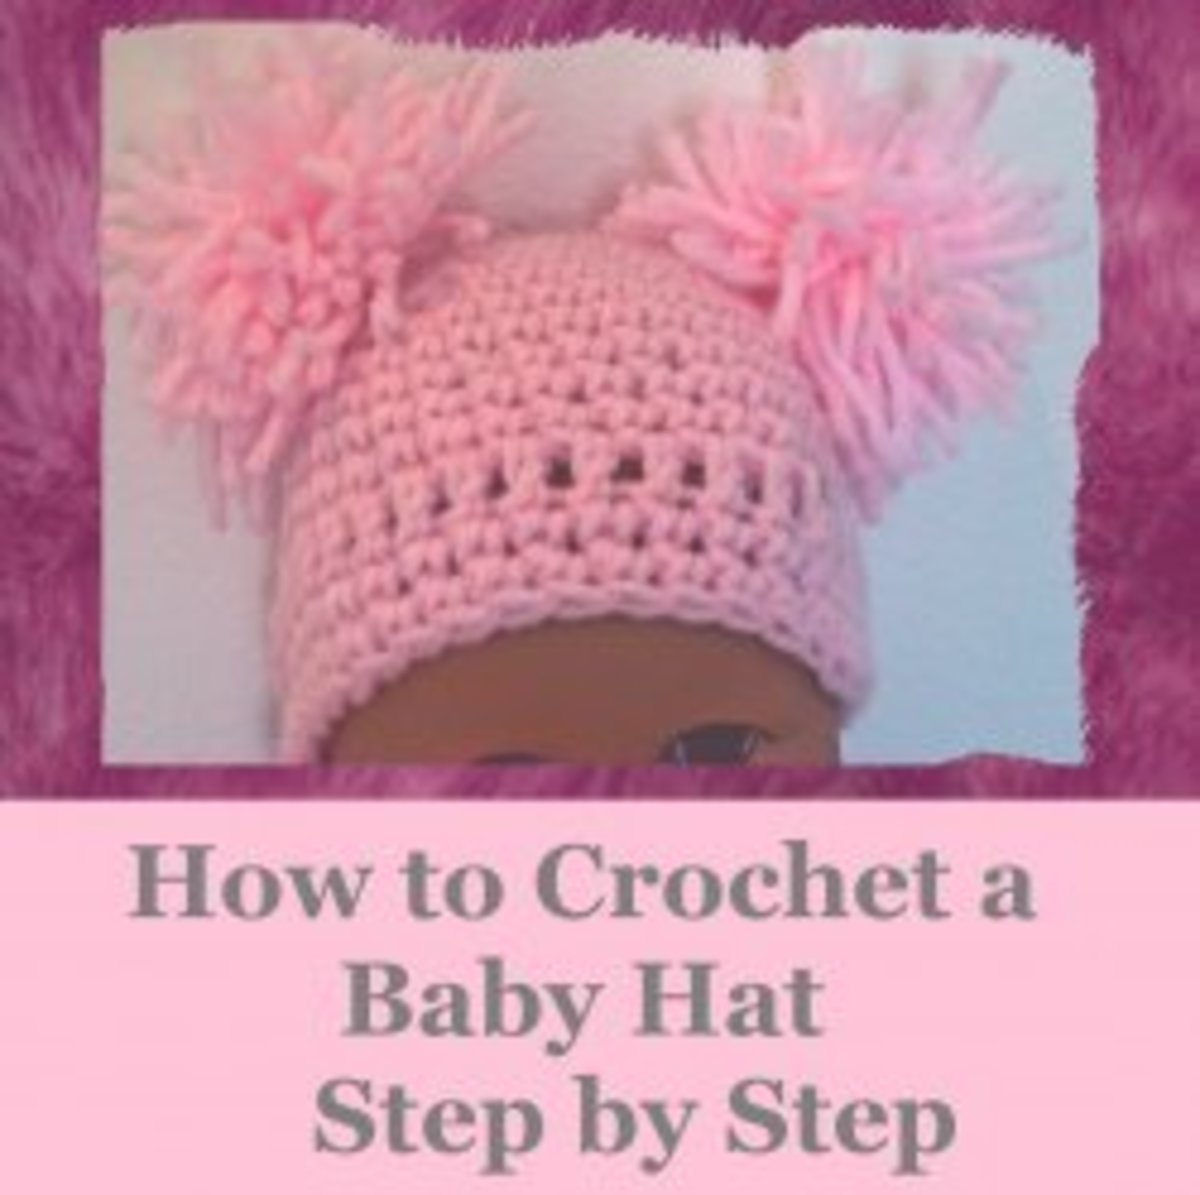 How to Crochet a Baby Hat Ideal for Beginners (With Step-by-Step ...